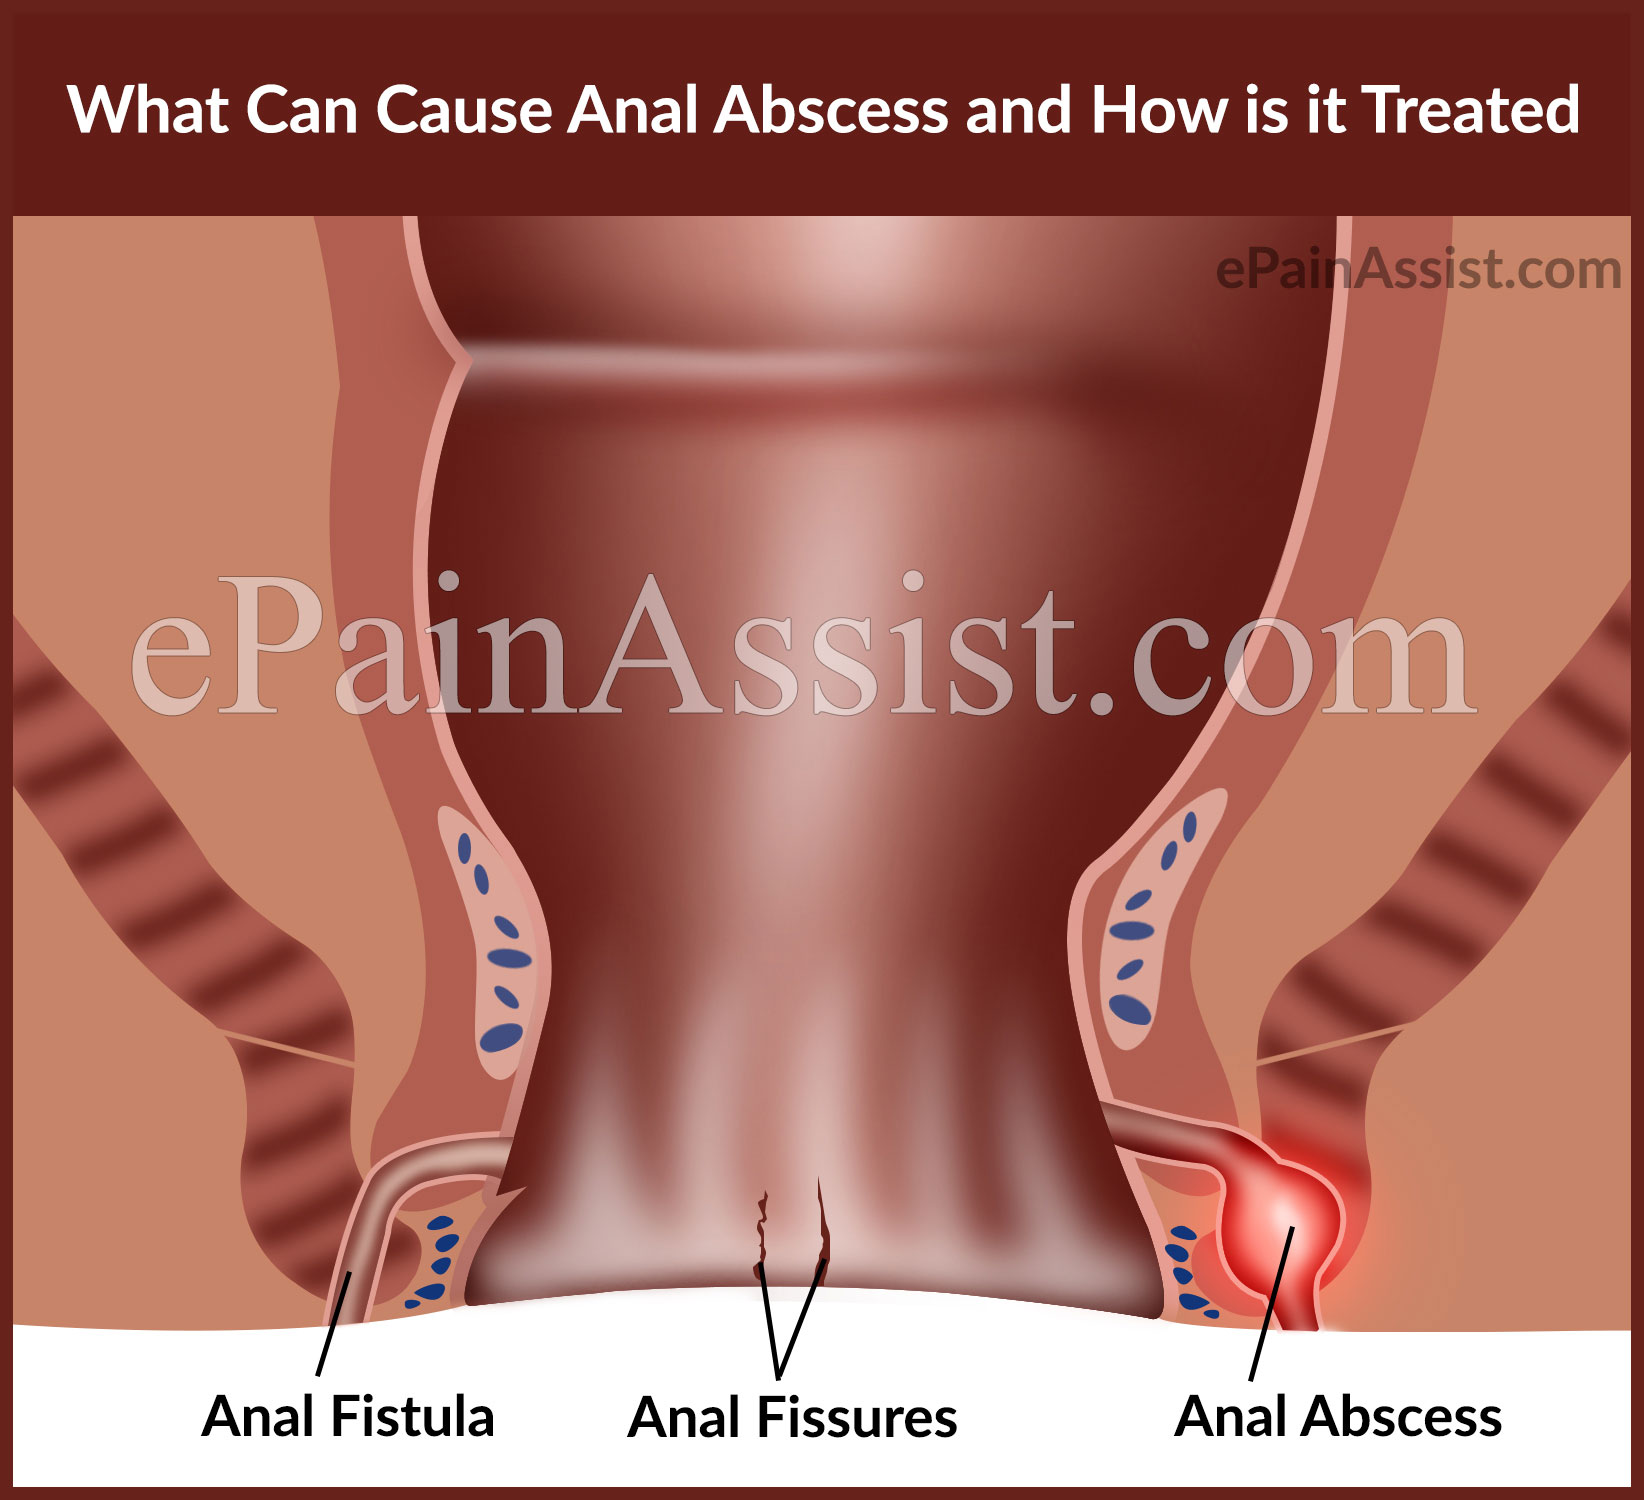 What Can Cause Anal Abscess and How is it Treated?